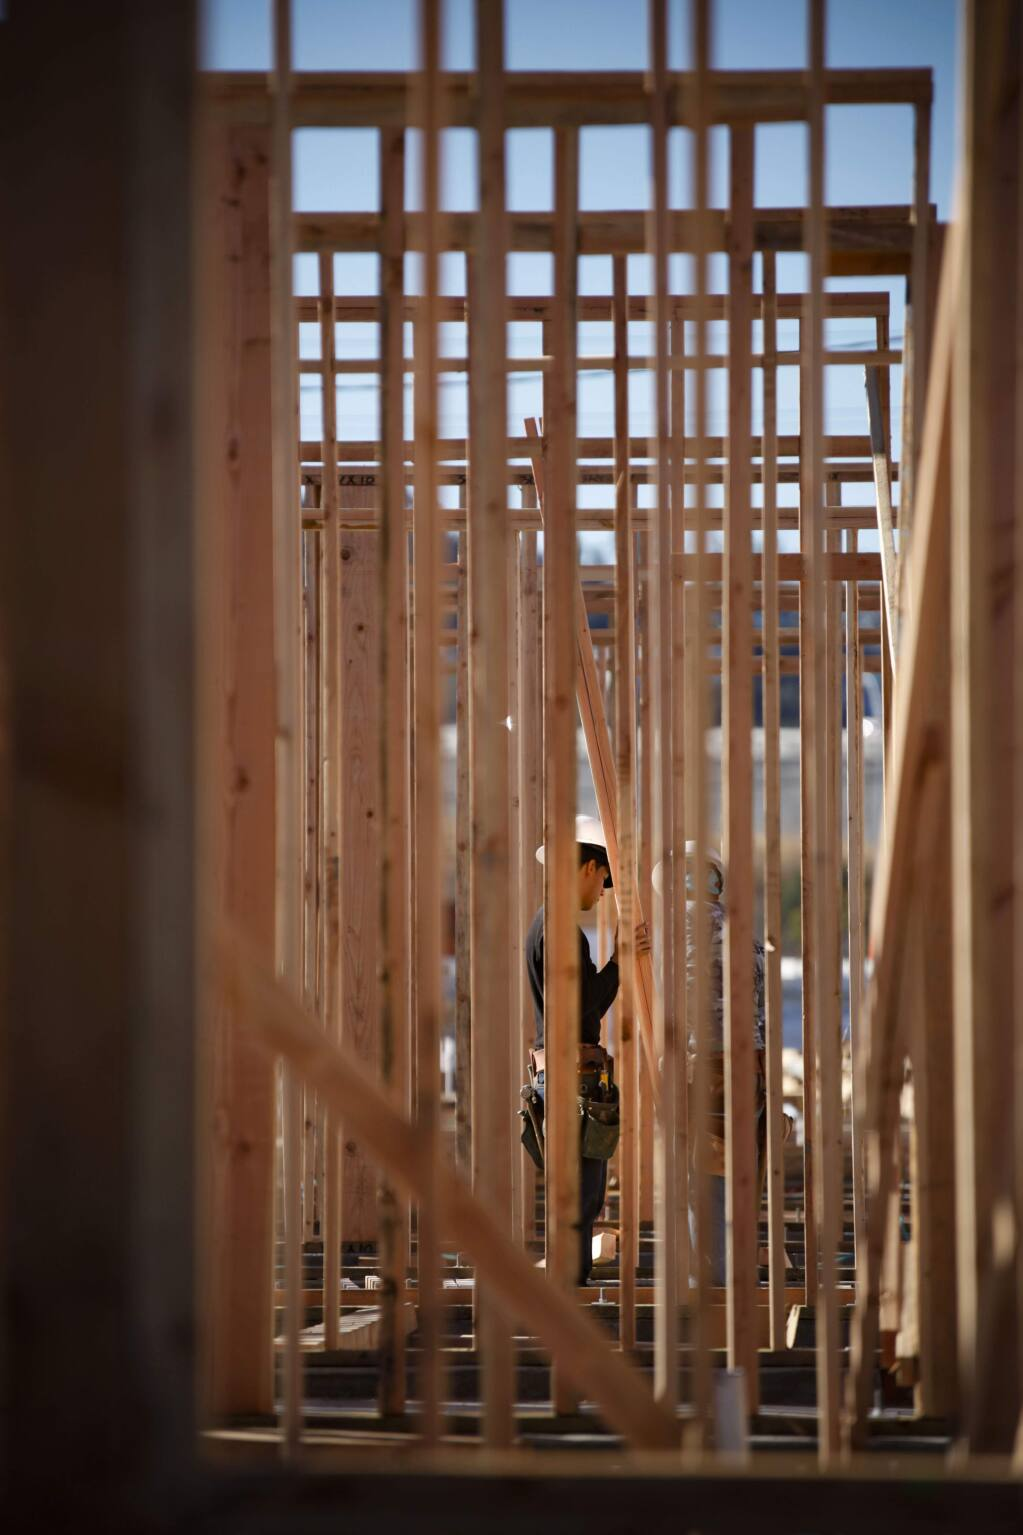 Petaluma, CA. Monday, October 23, 2017._As the housing market continues to tighten in the North Bay, construction at the Altura Apartments proceeds. They plan to include more affordable housing in Petaluma. (CRISSY PASCUAL/ARGUS-COURIER STAFF)